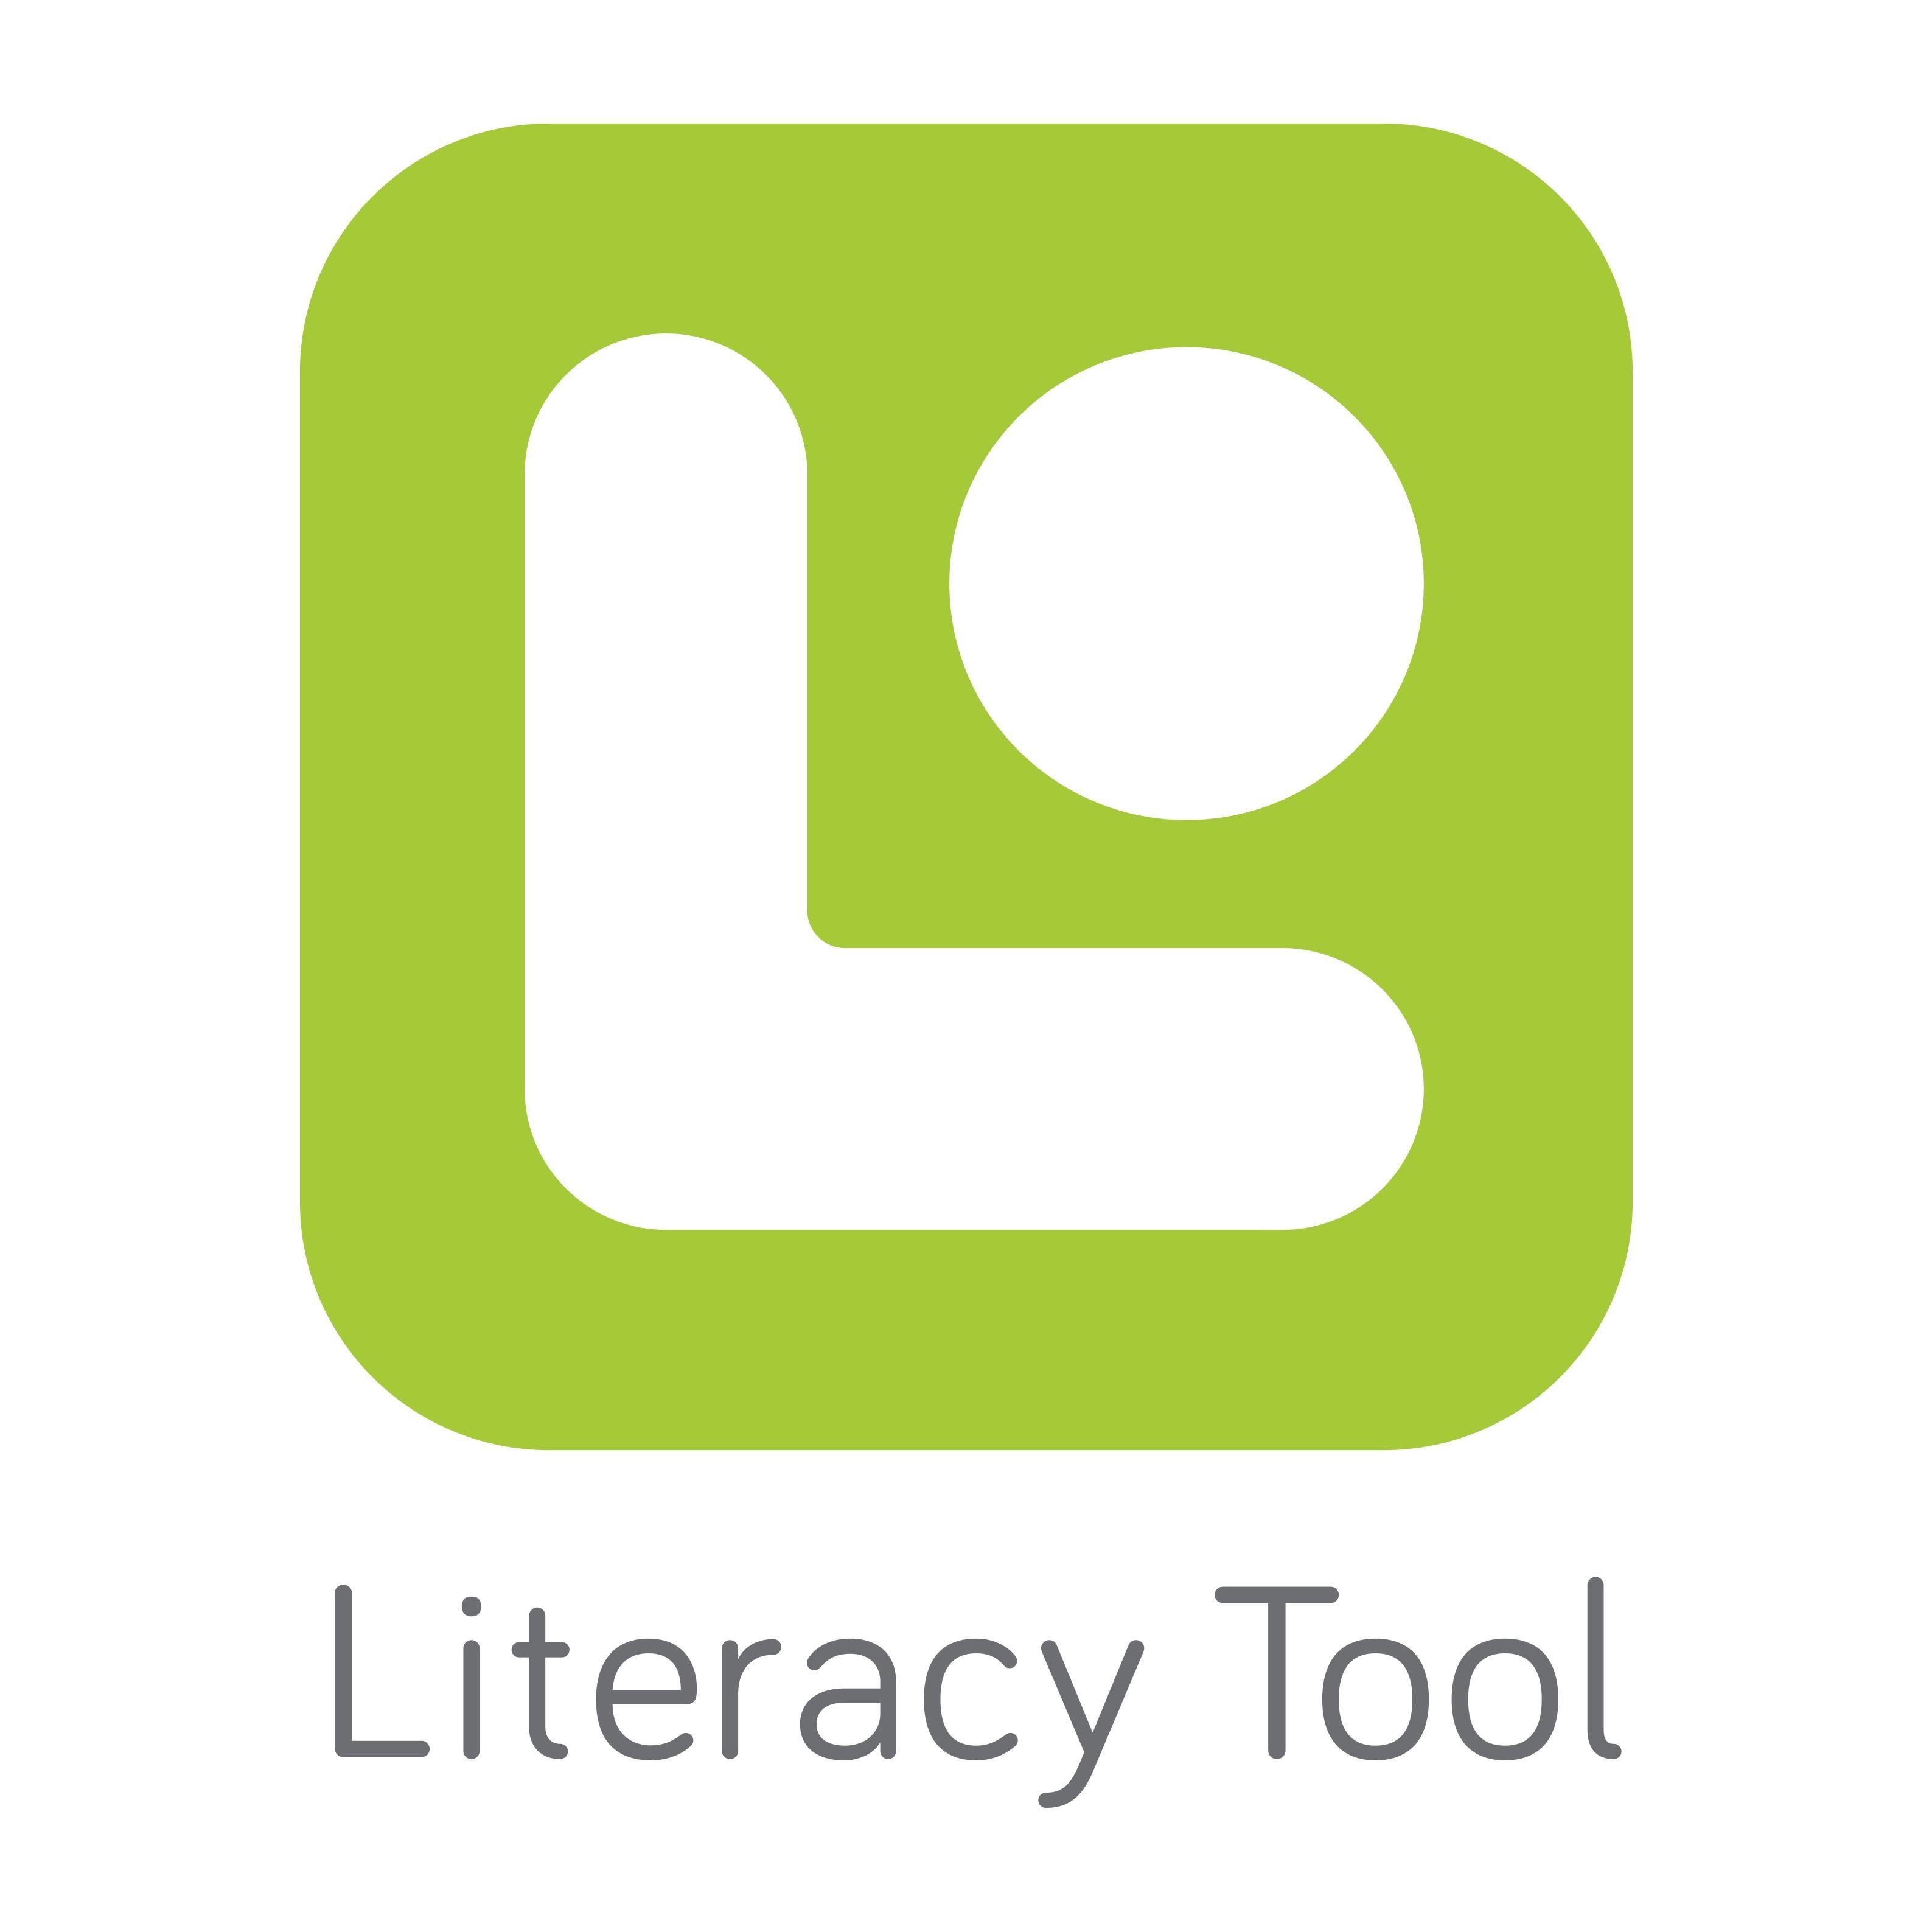 The Literacy Tool